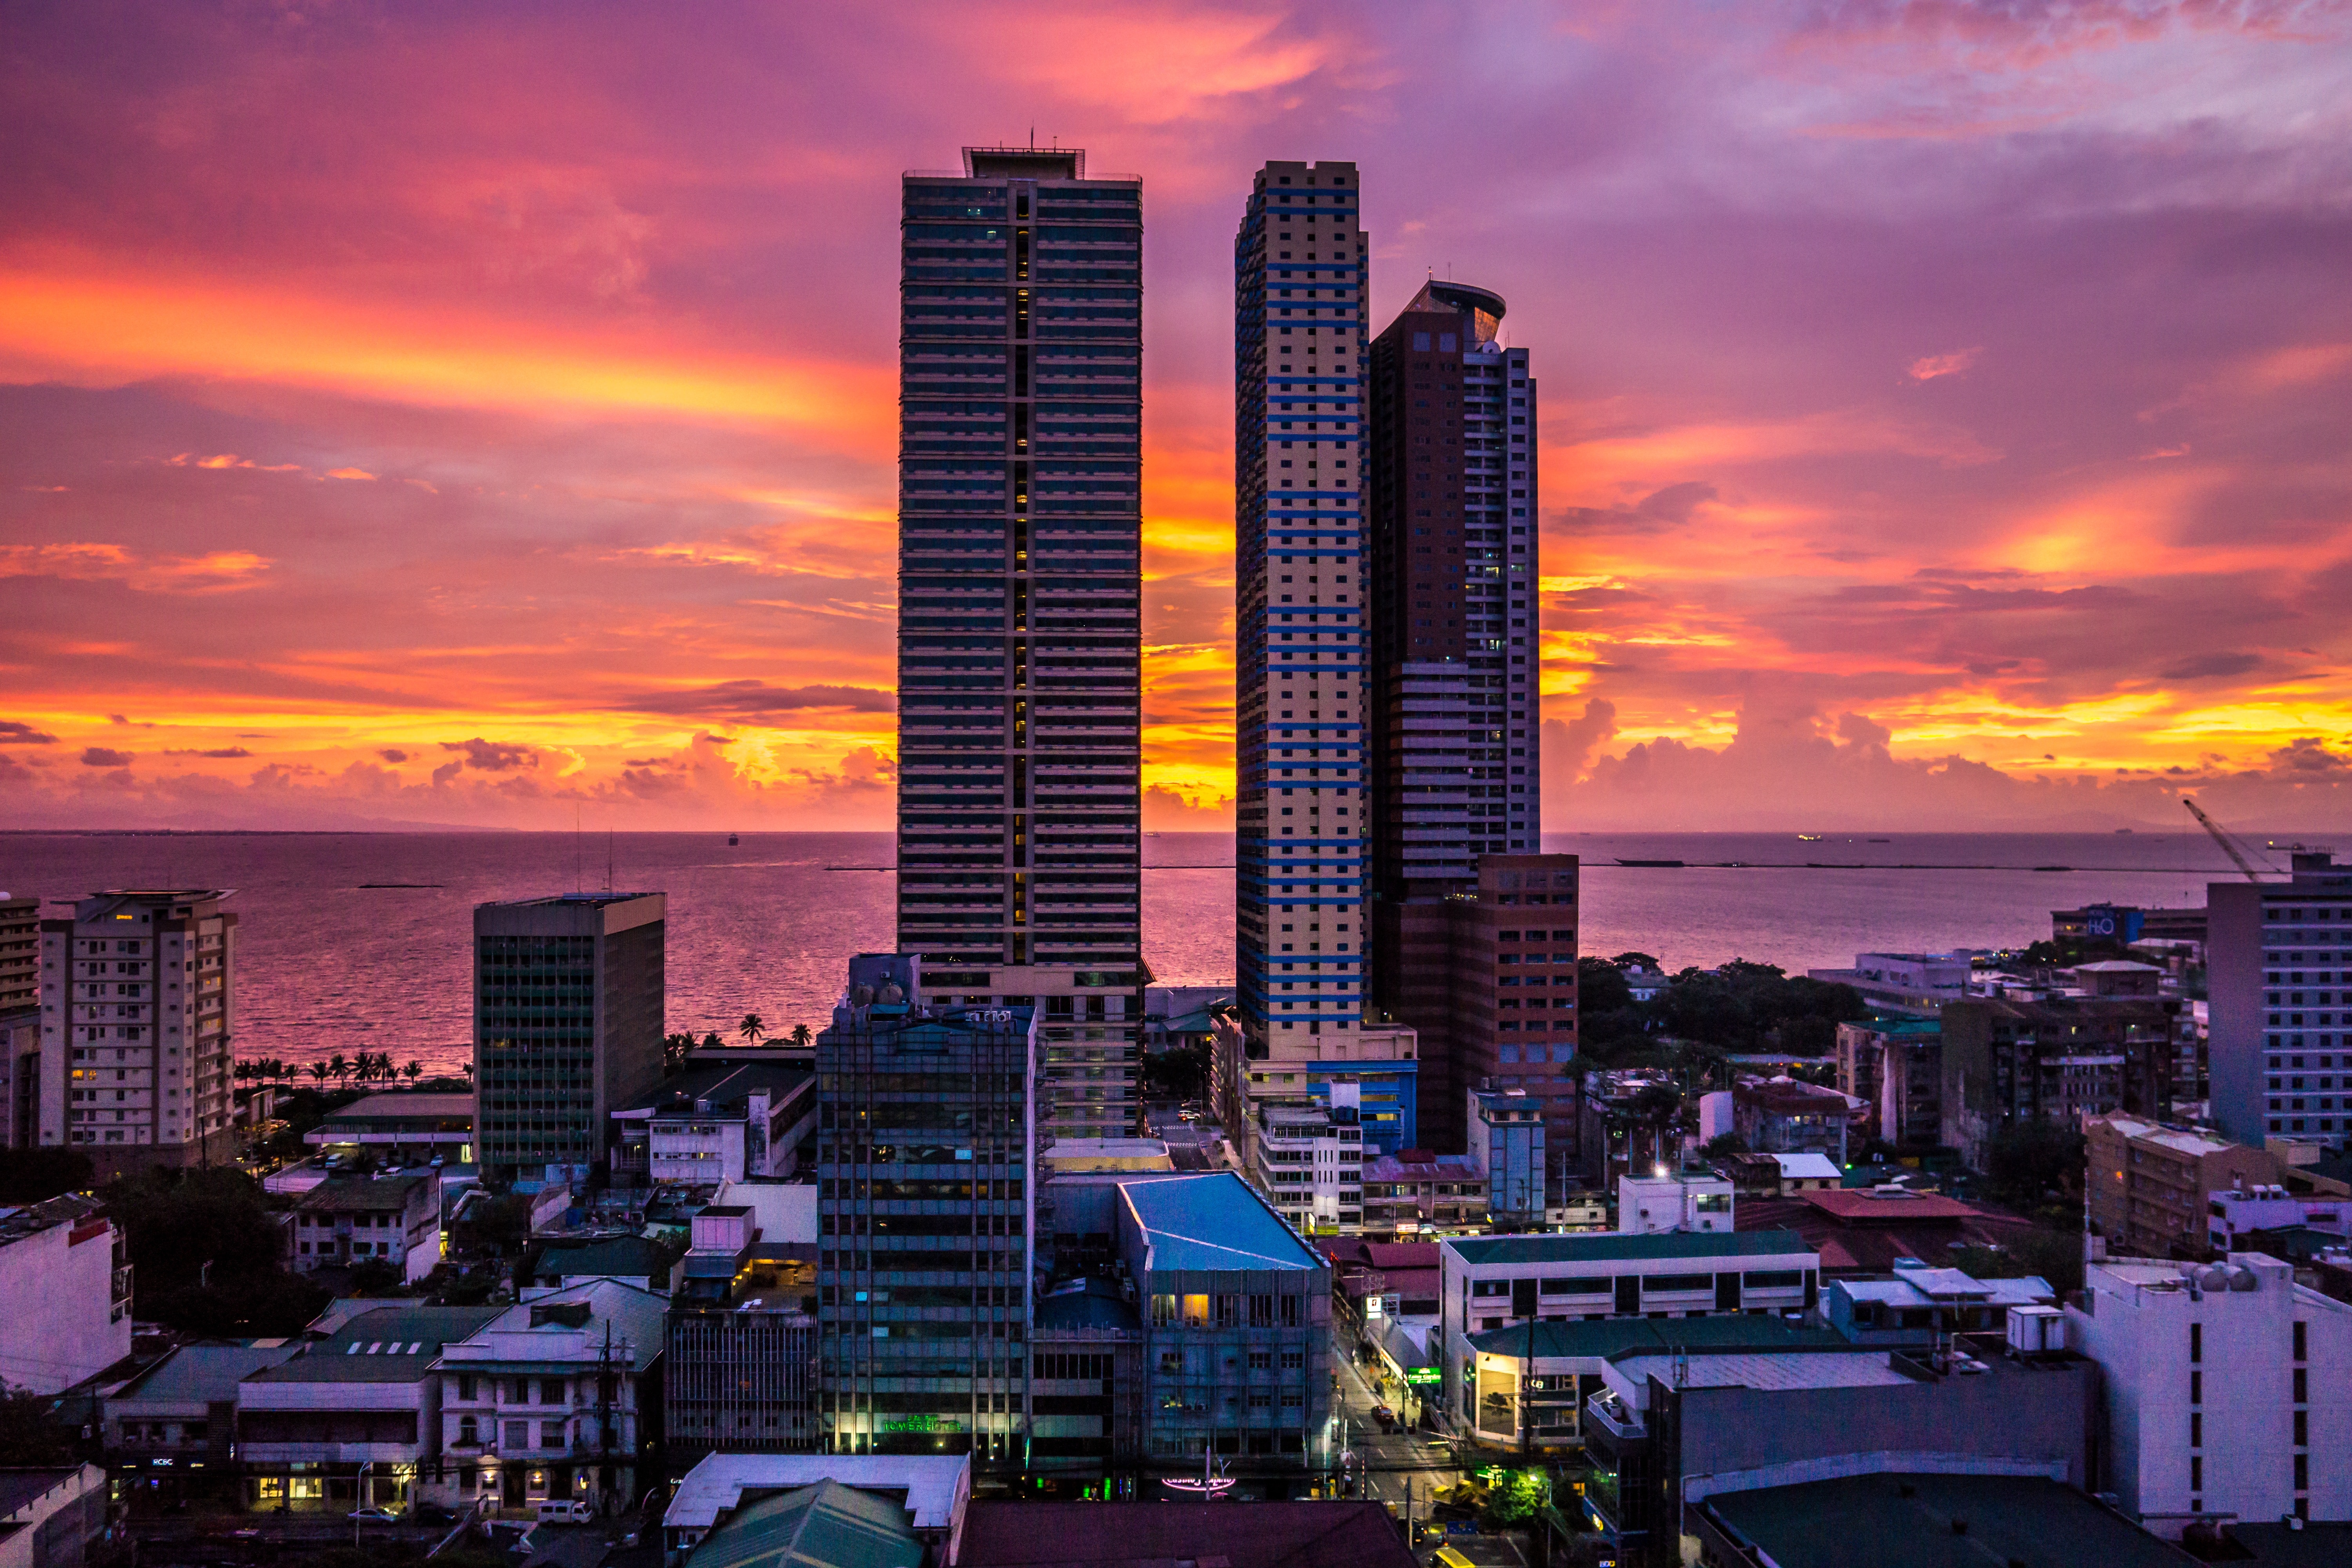 Landscape Photography Of A City During Sunset 183 Free Stock